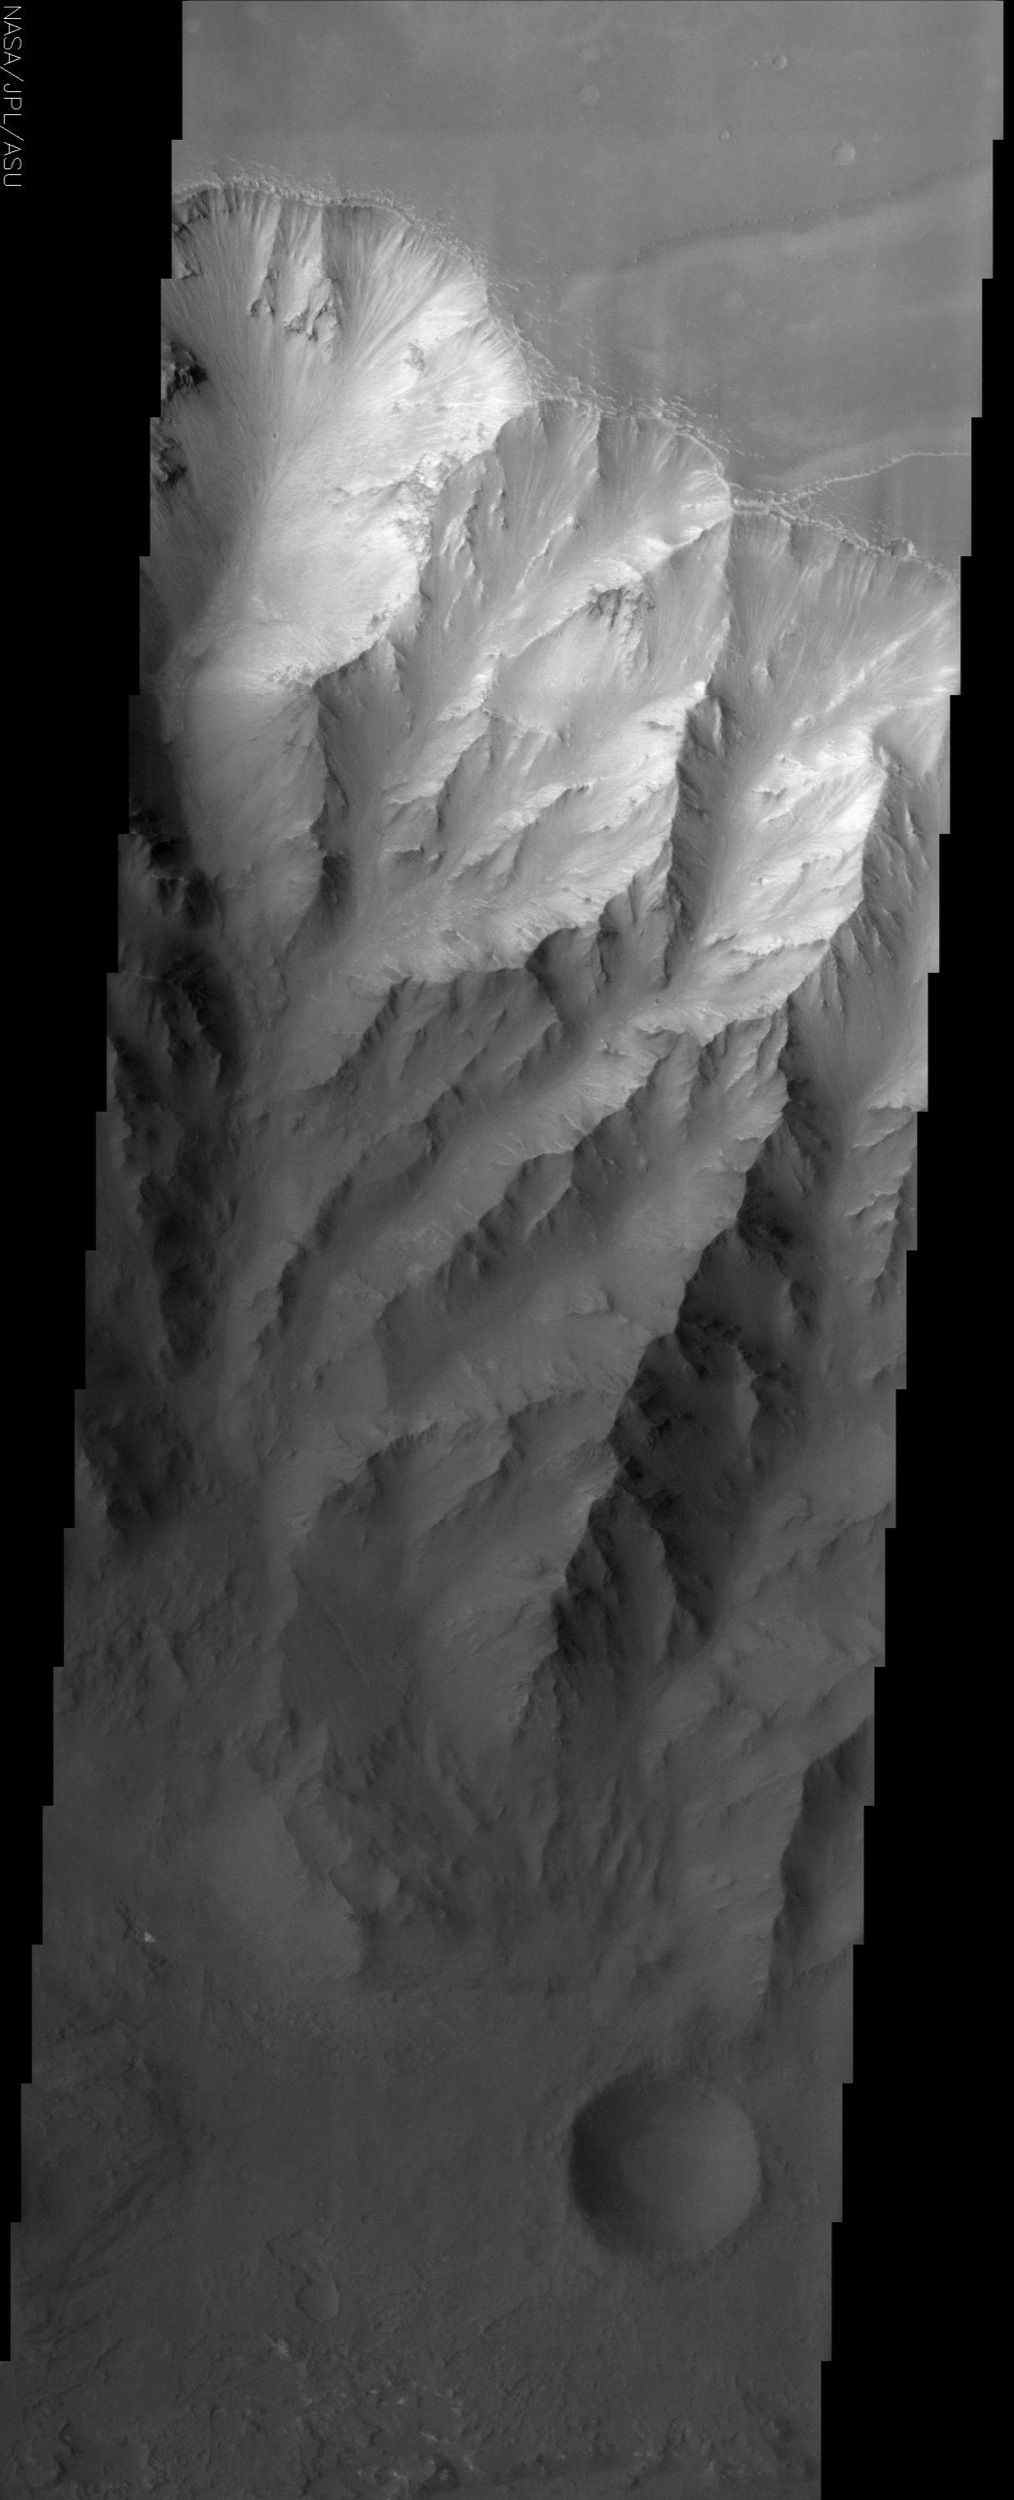 This image from NASA's Mars Odyssey spacecraft shows the northern interior wall of Coprates Chasma, one of the major canyons that form Valles Marineris.